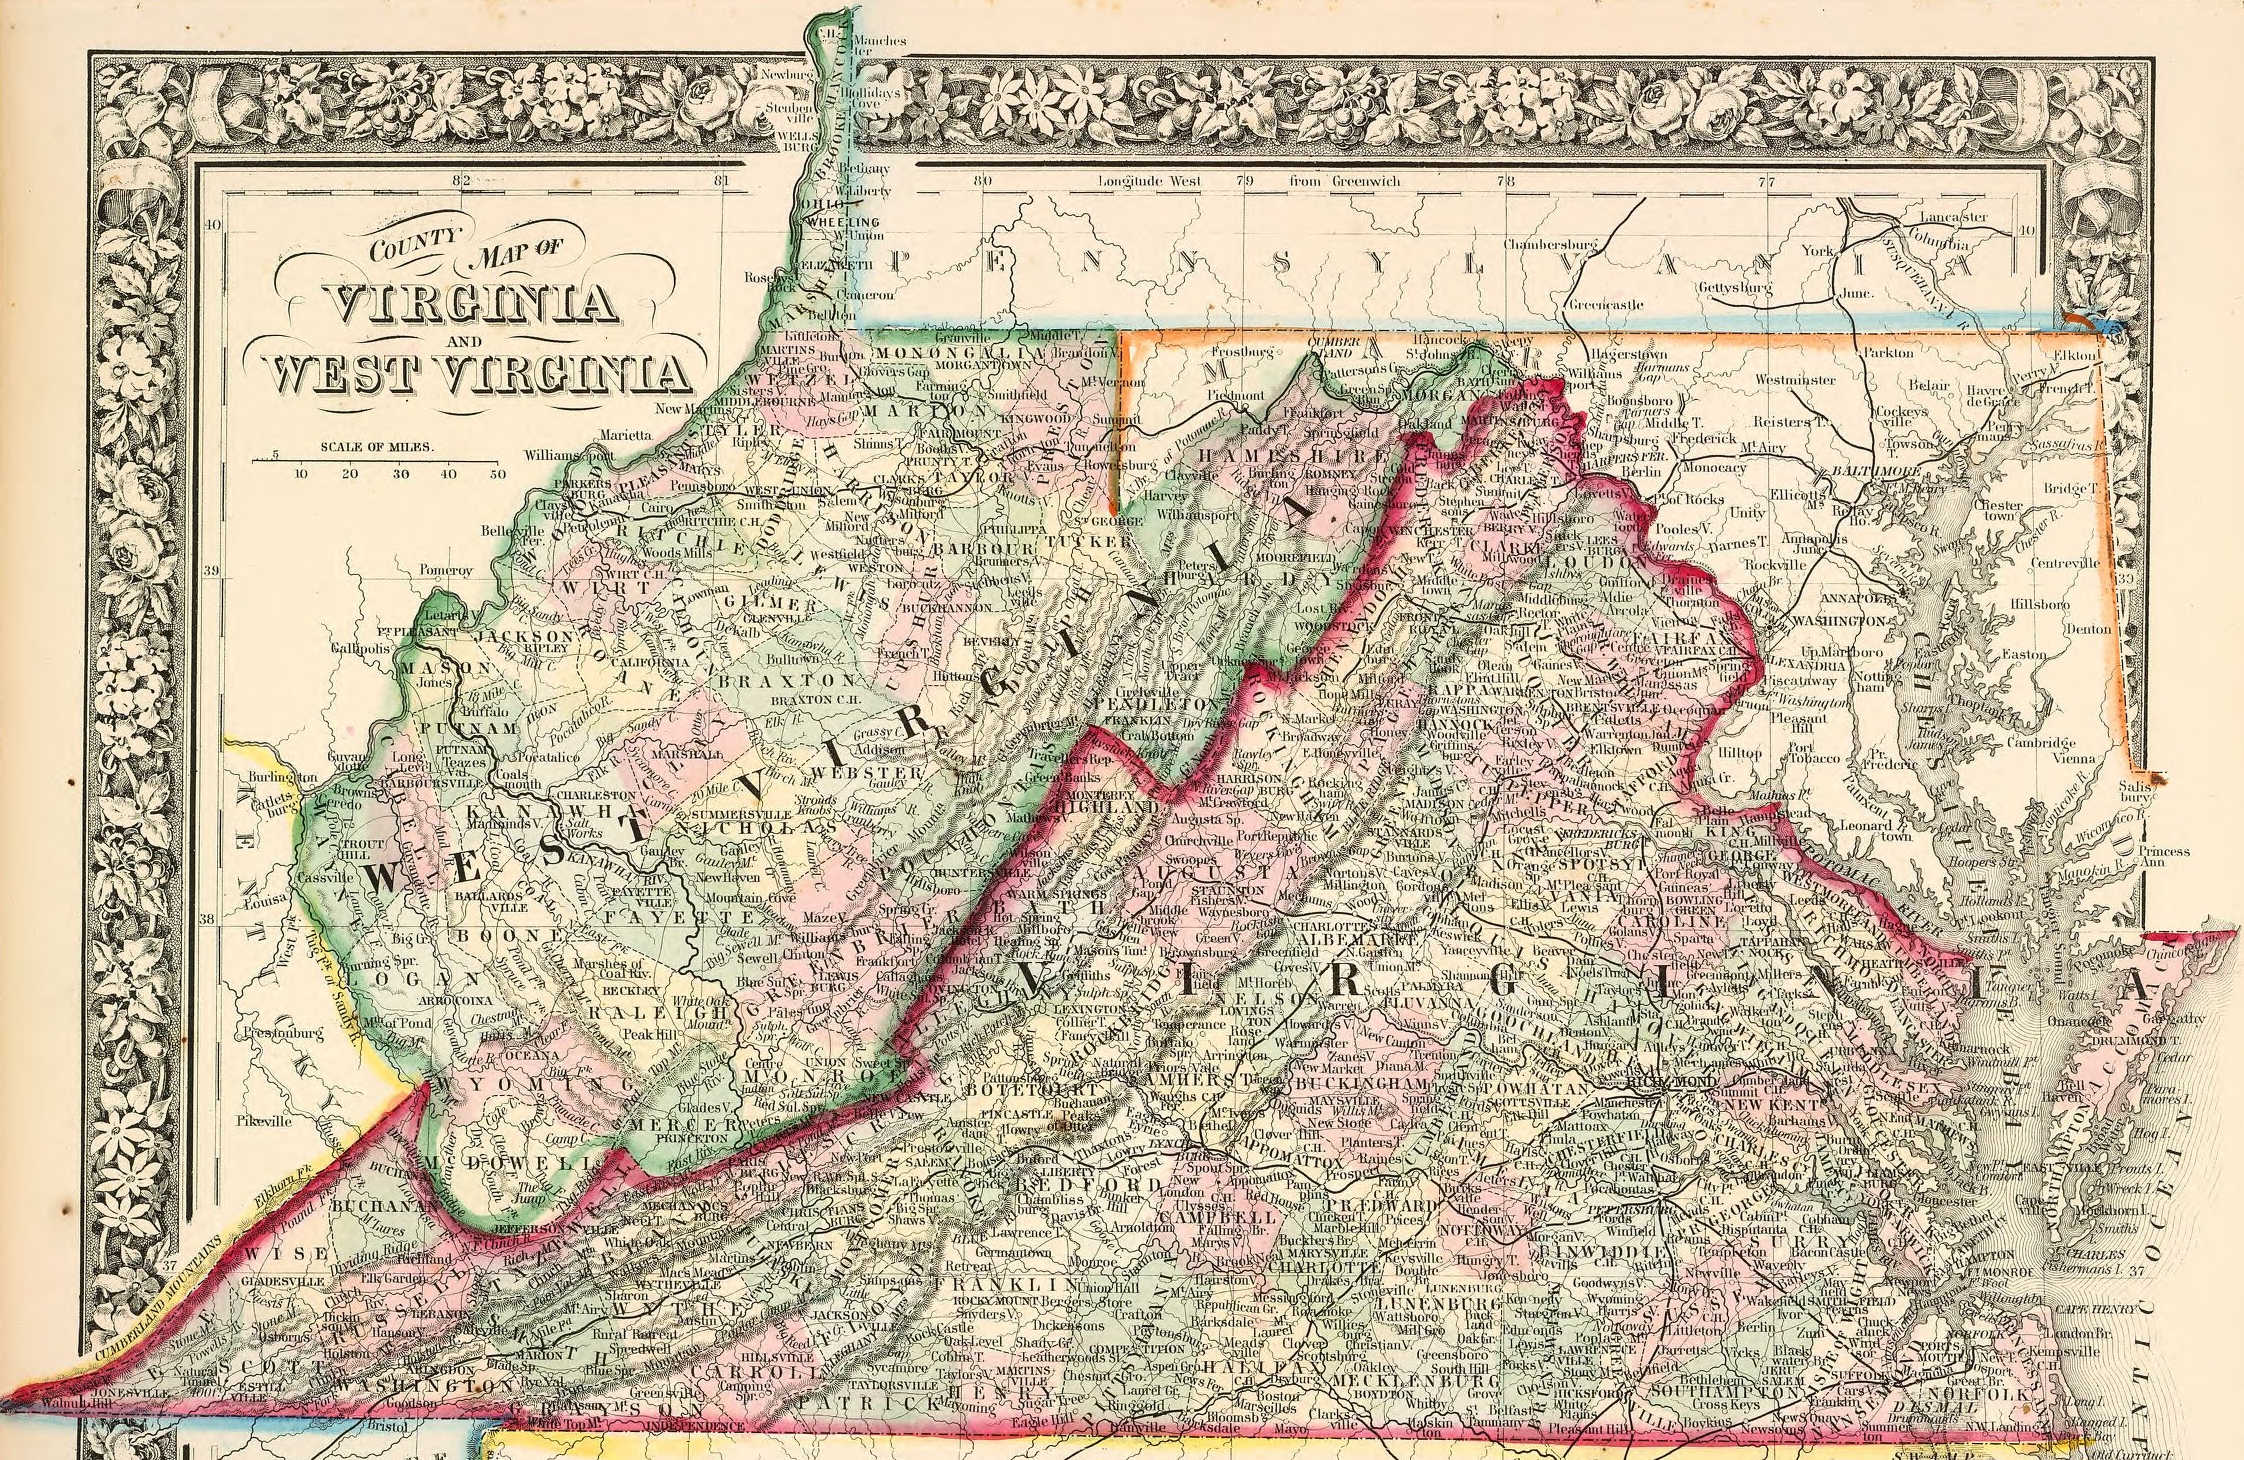 VirginiaWest Virginia Boundary - Virginia map counties